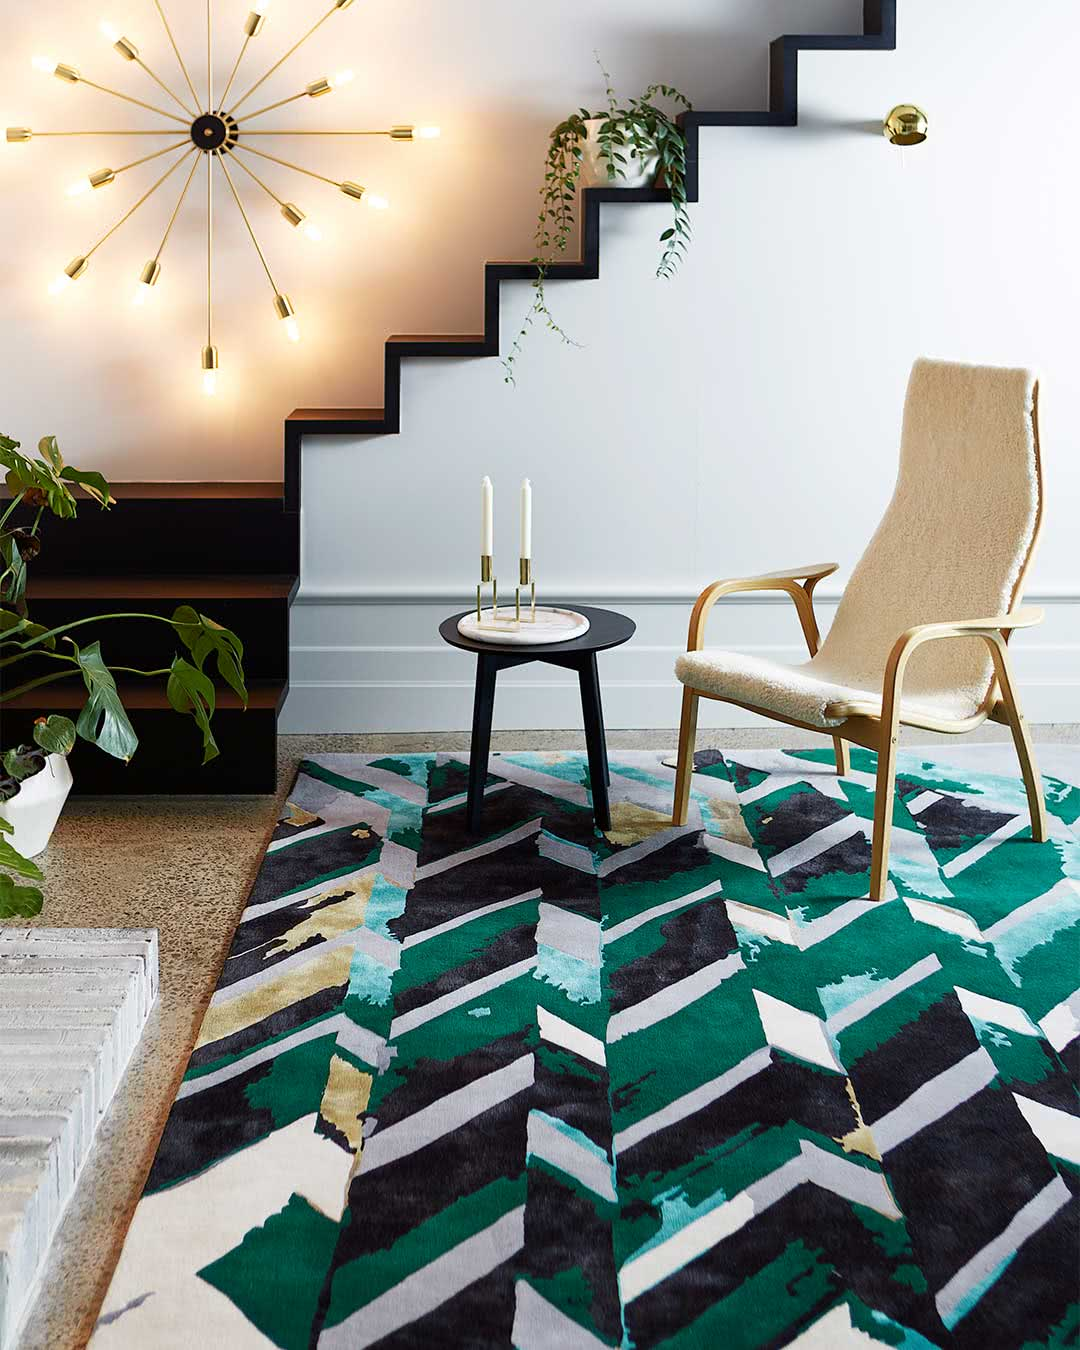 In room setting of our modern, geometrically patterned Rift rug design in green